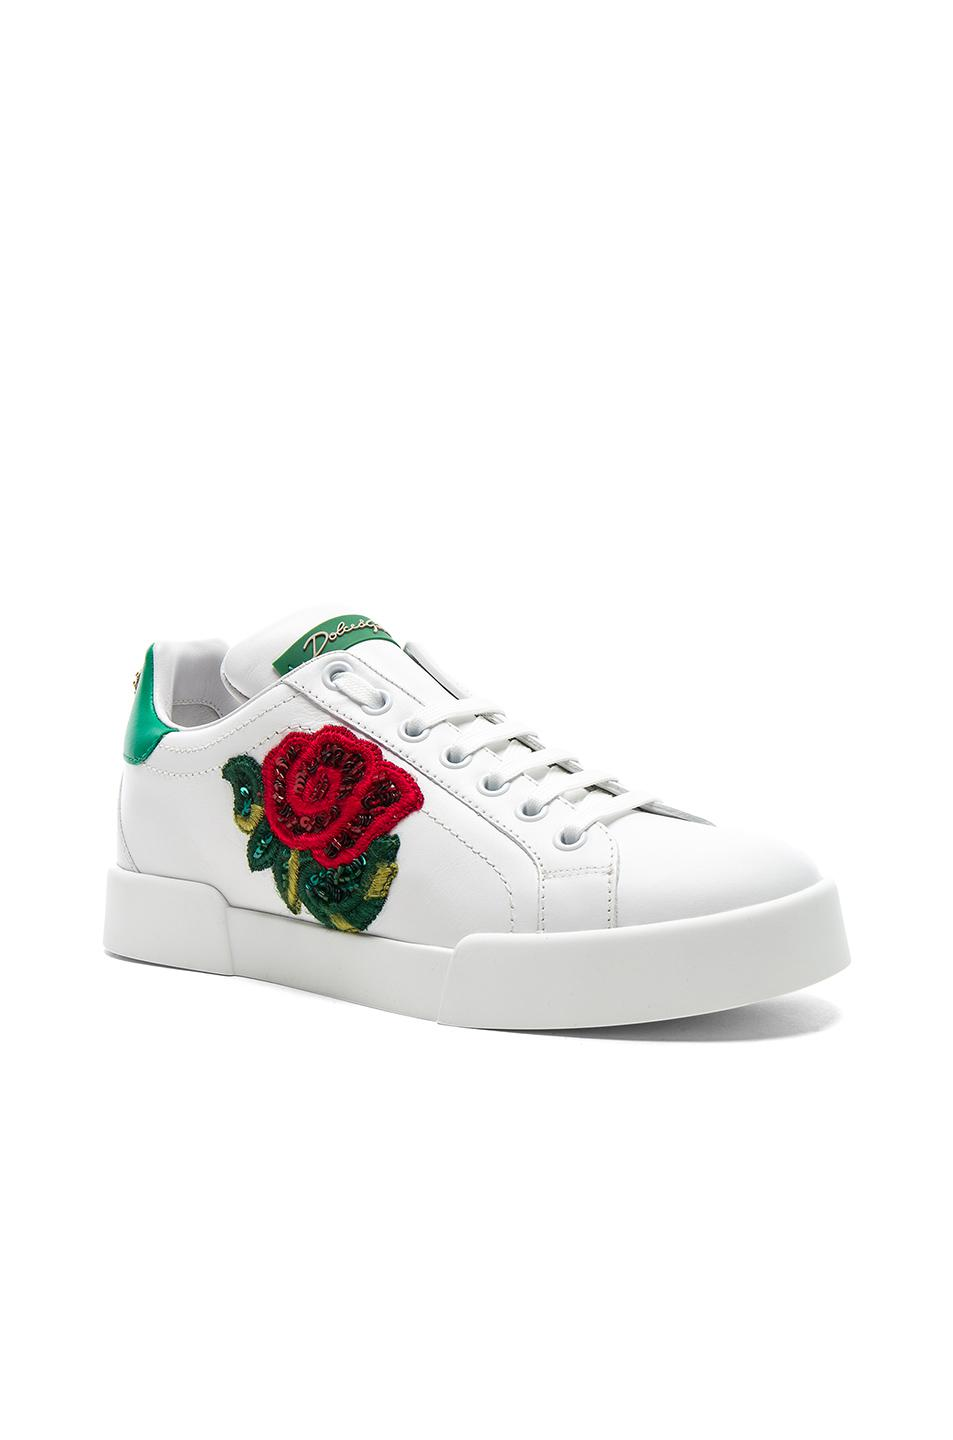 Dolce & Gabbana Sequin Rose Leather Sneaker in White